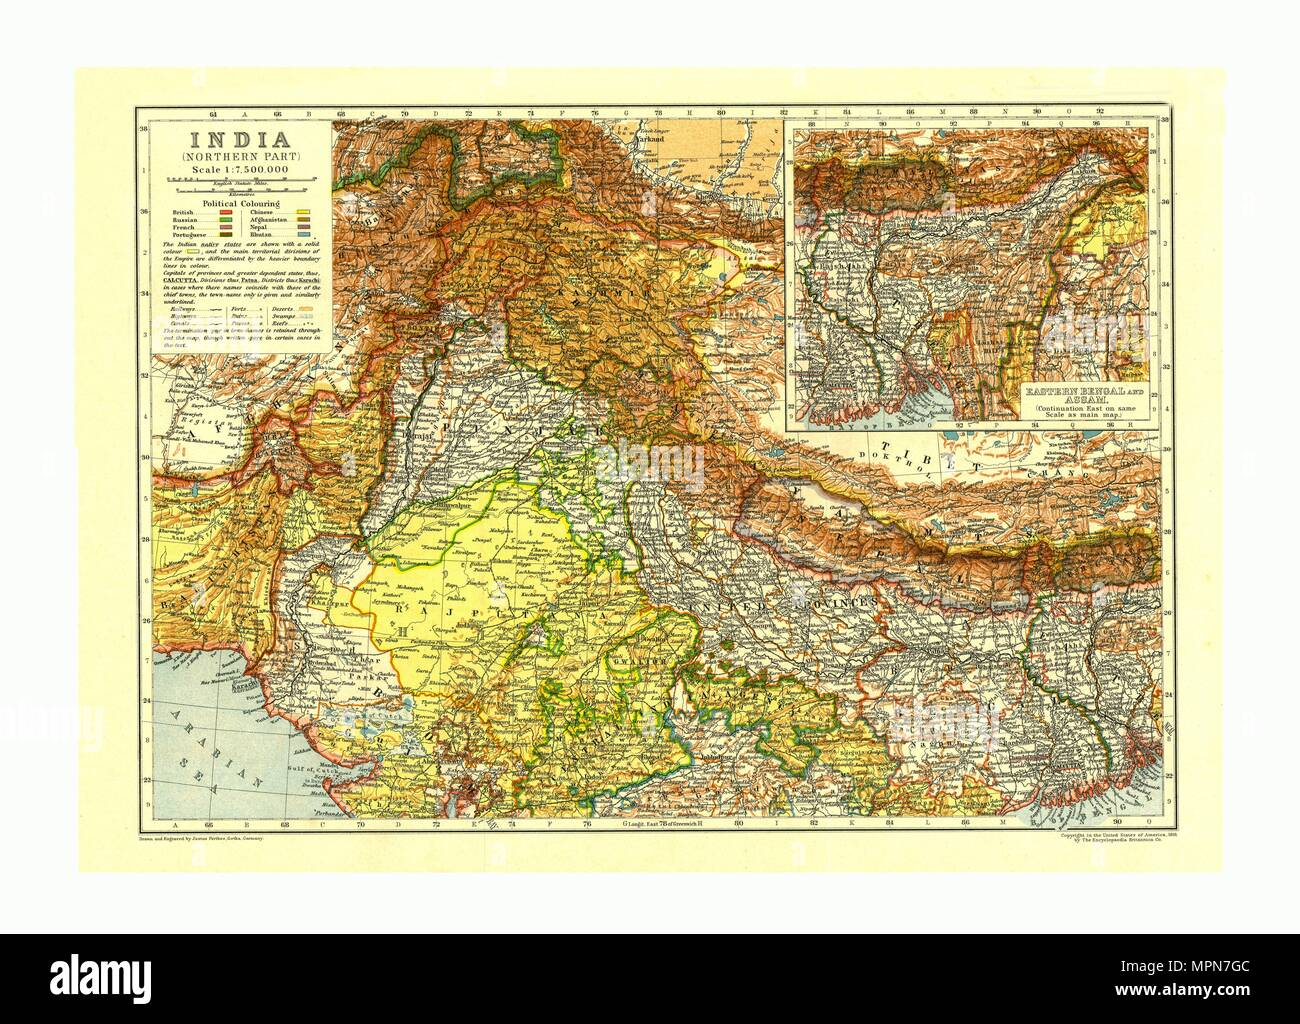 Map of India Northern part, c1910. Artist: Johann Georg Justus Perthes. - Stock Image